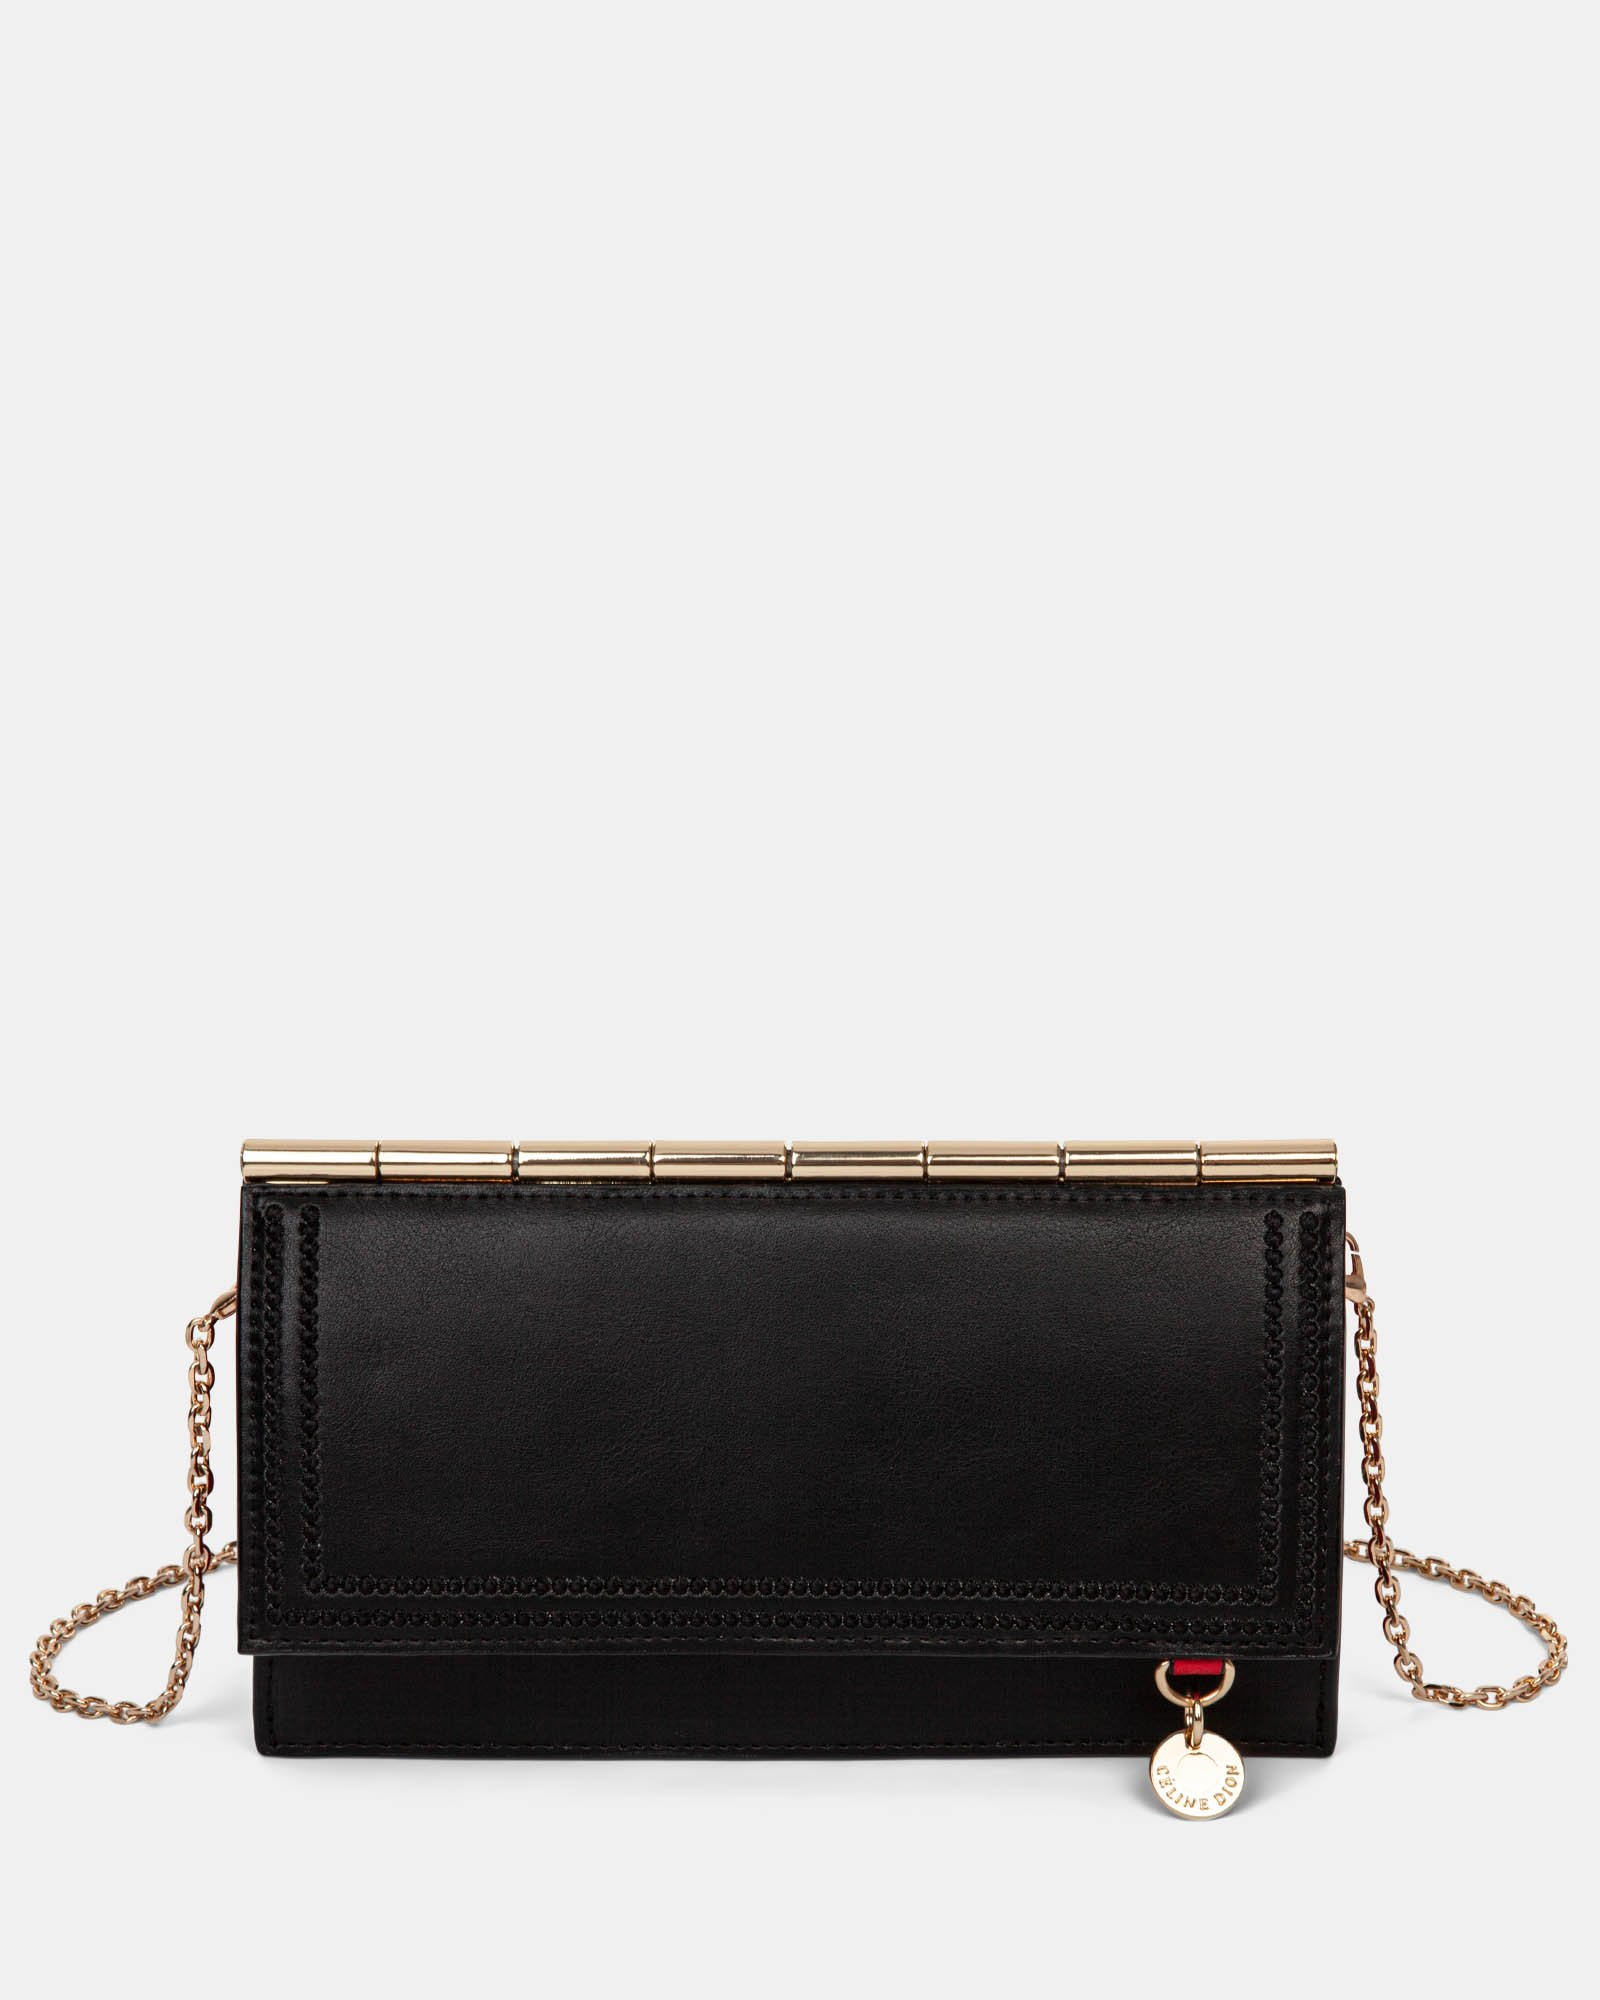 Amore – Wallet on string with Removable chain crossbody strap - Black - Céline Dion - Zoom